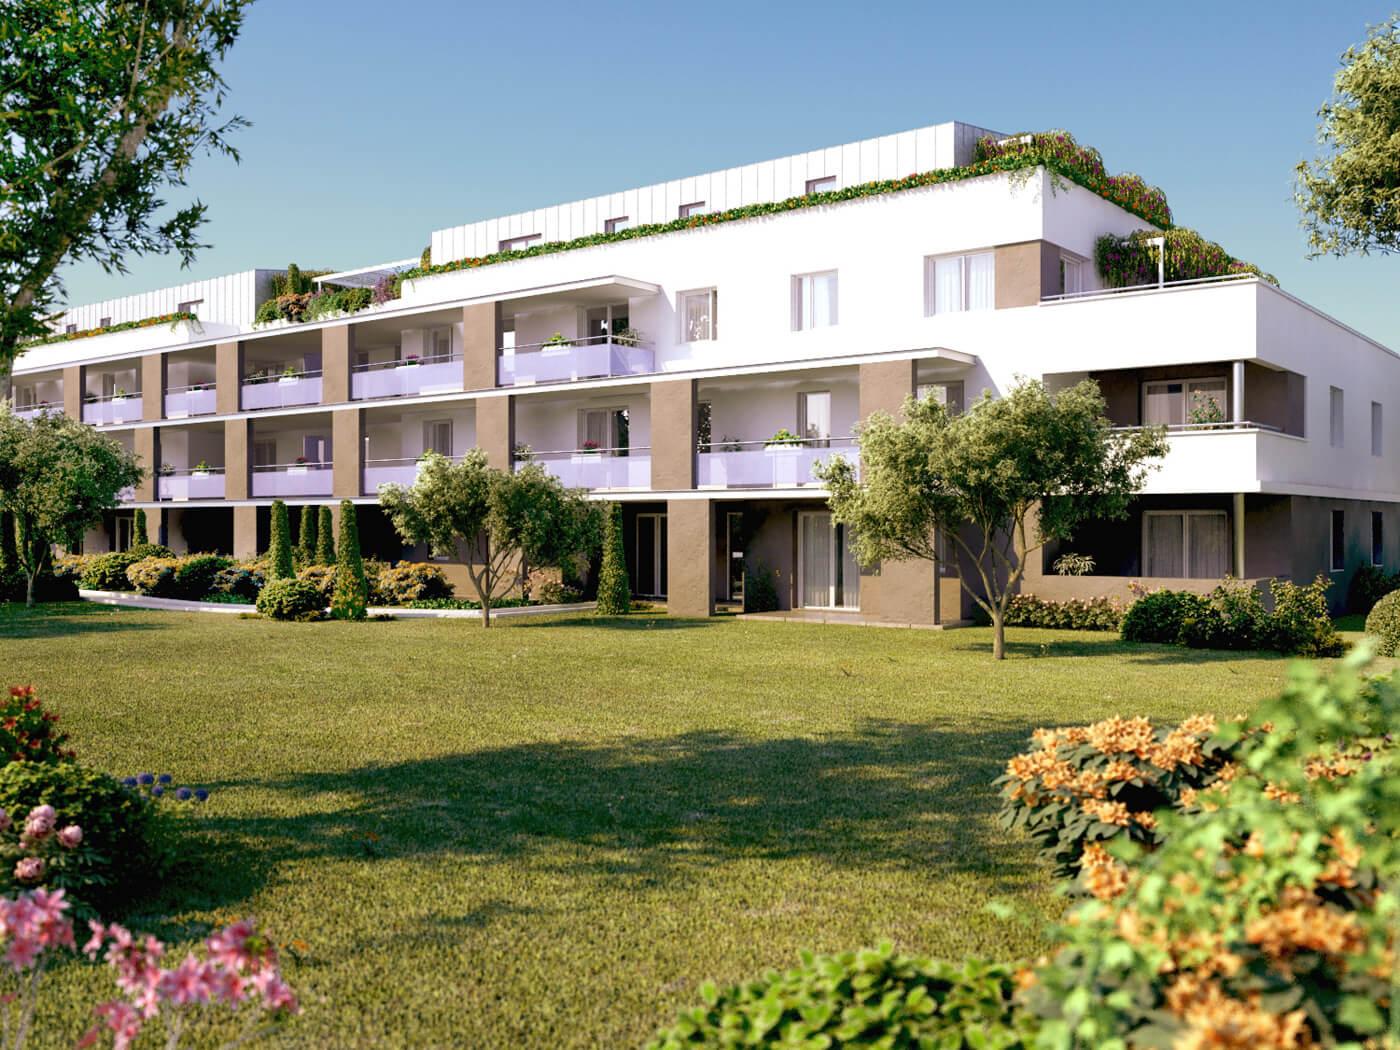 Programme immobilier neuf sc nographik for Programme immobilier neuf